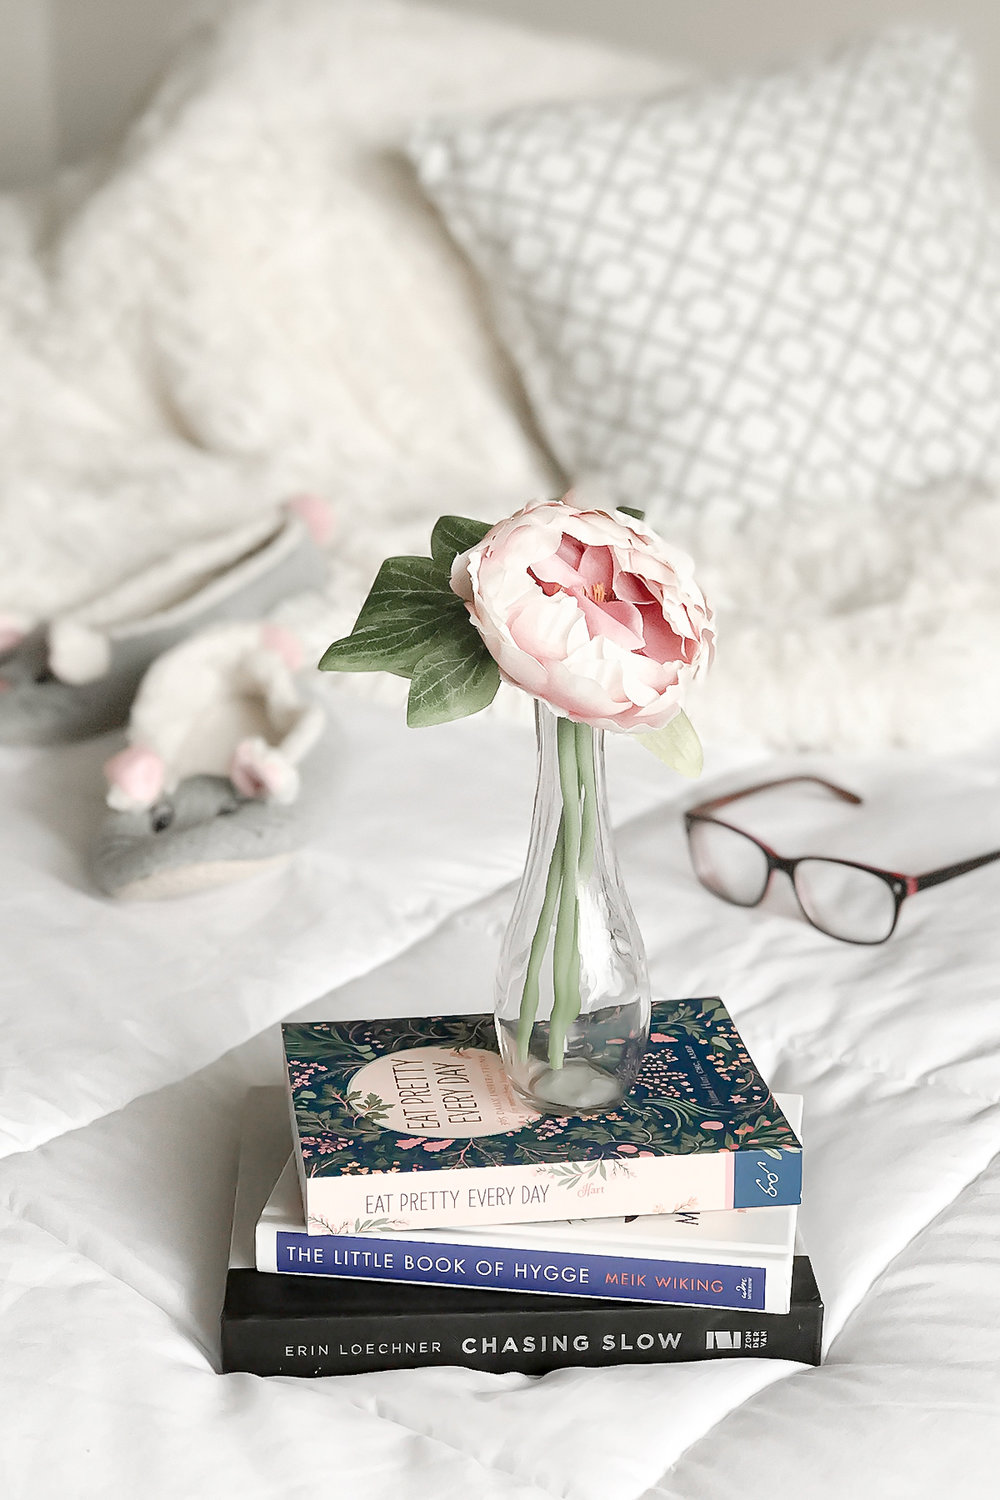 Inspiring Reads For A Fruitful Year | A Girl, Obsessed